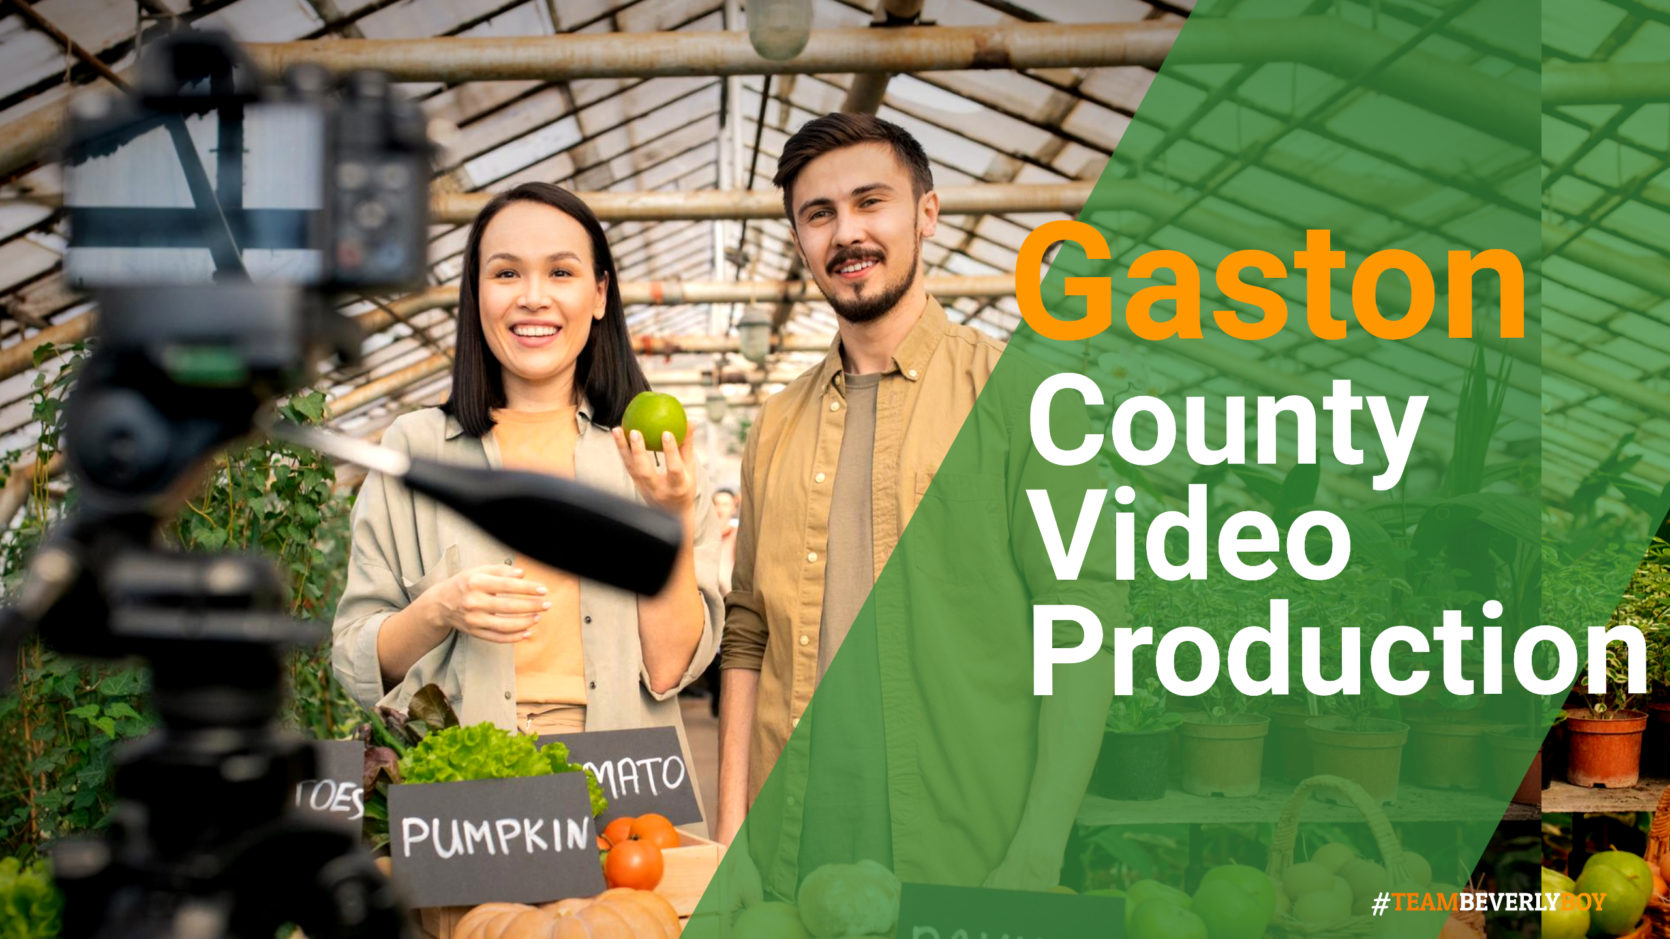 Gaston County Video Production